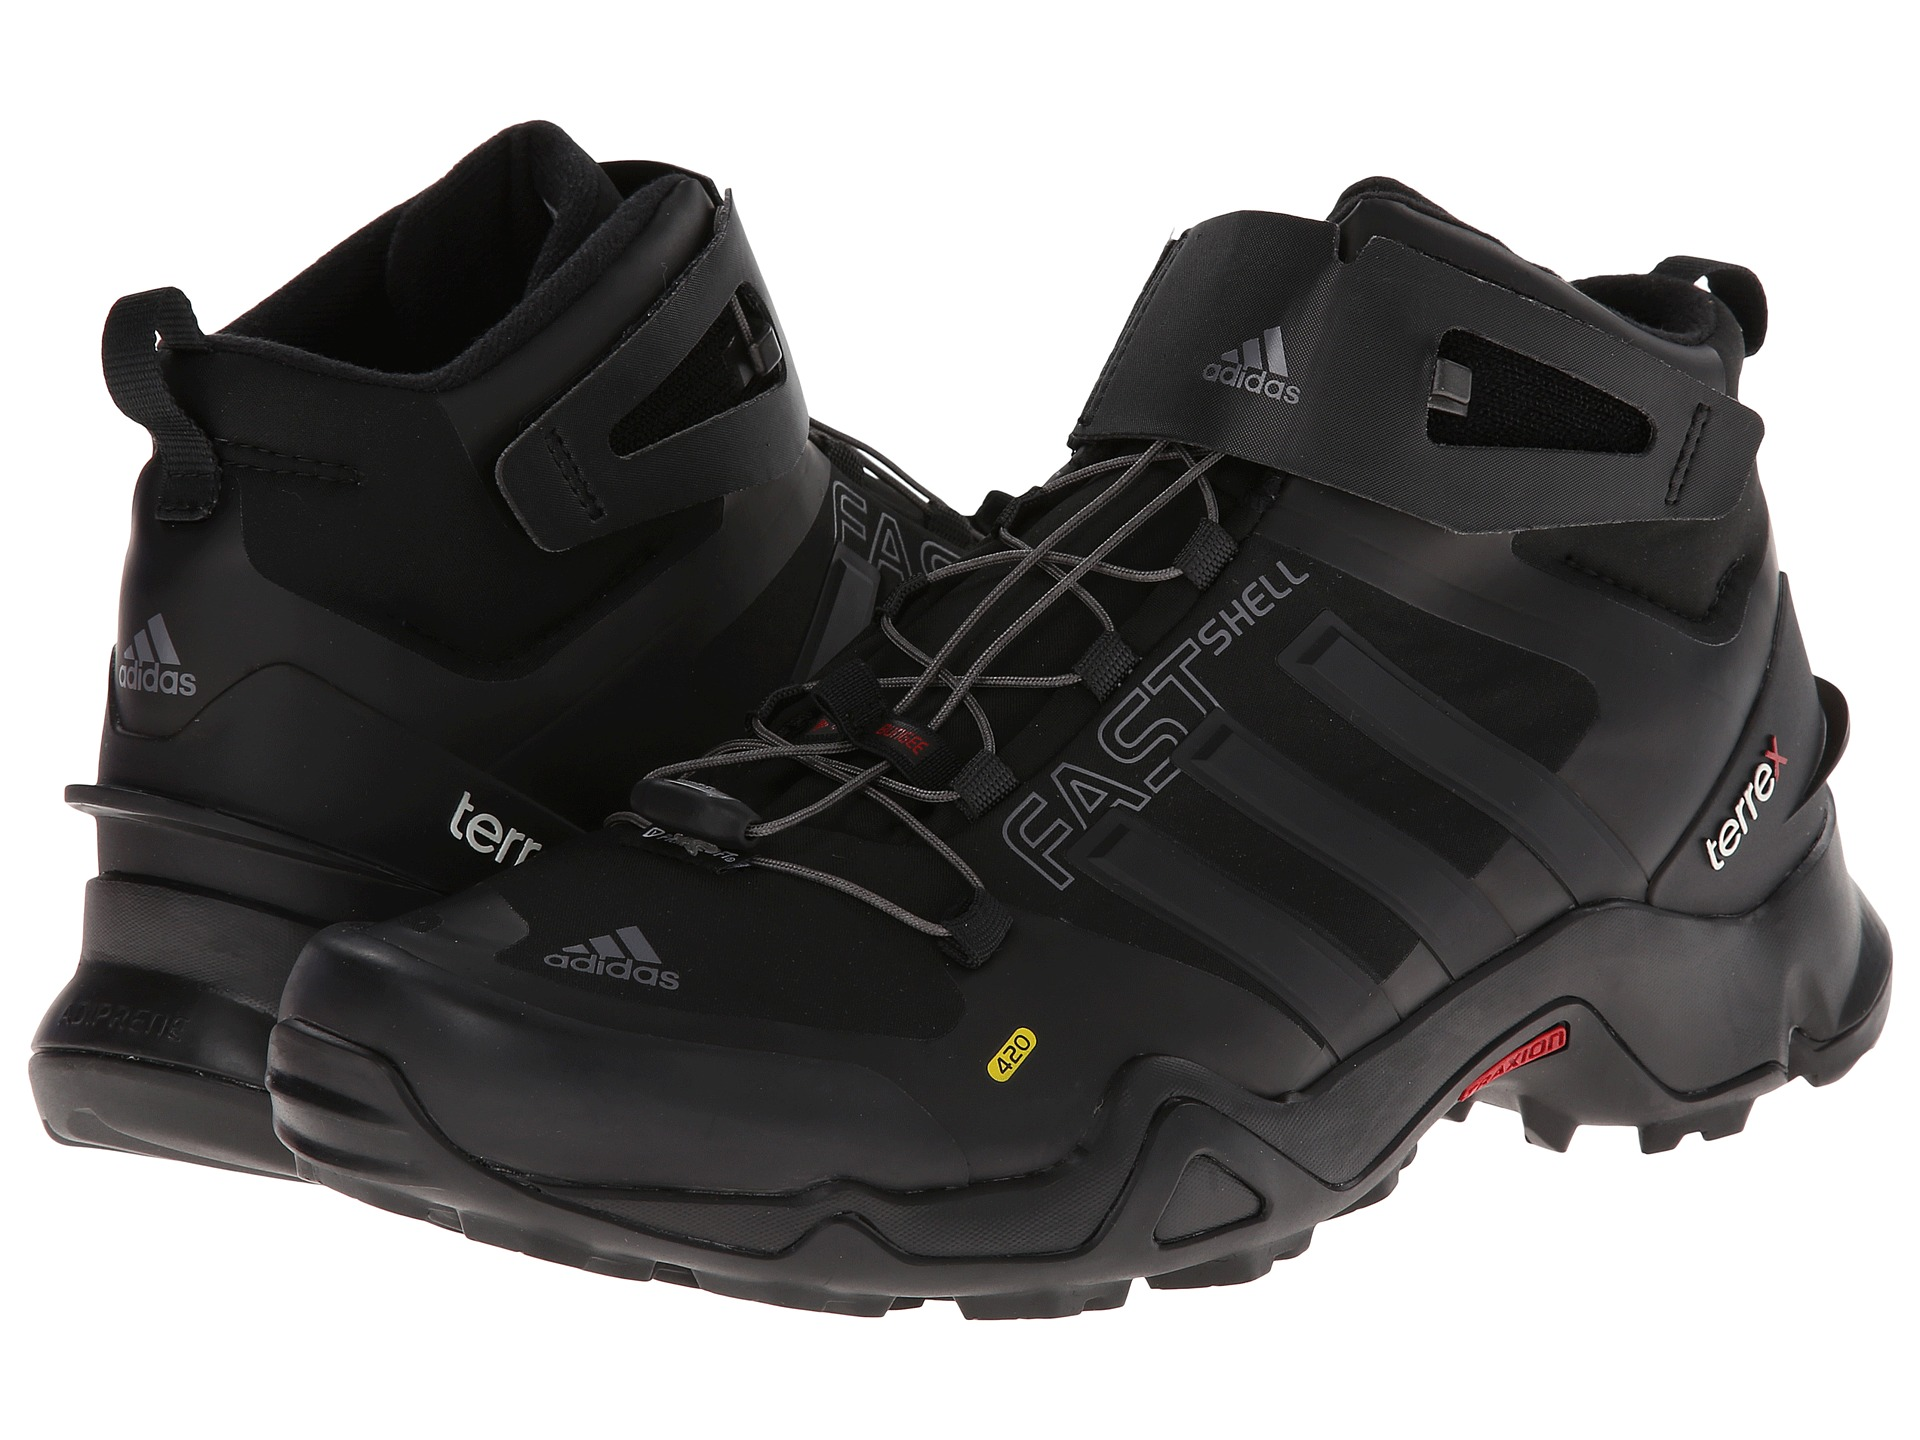 Adidas outdoor terrex fastshell mid shipped free at zappos